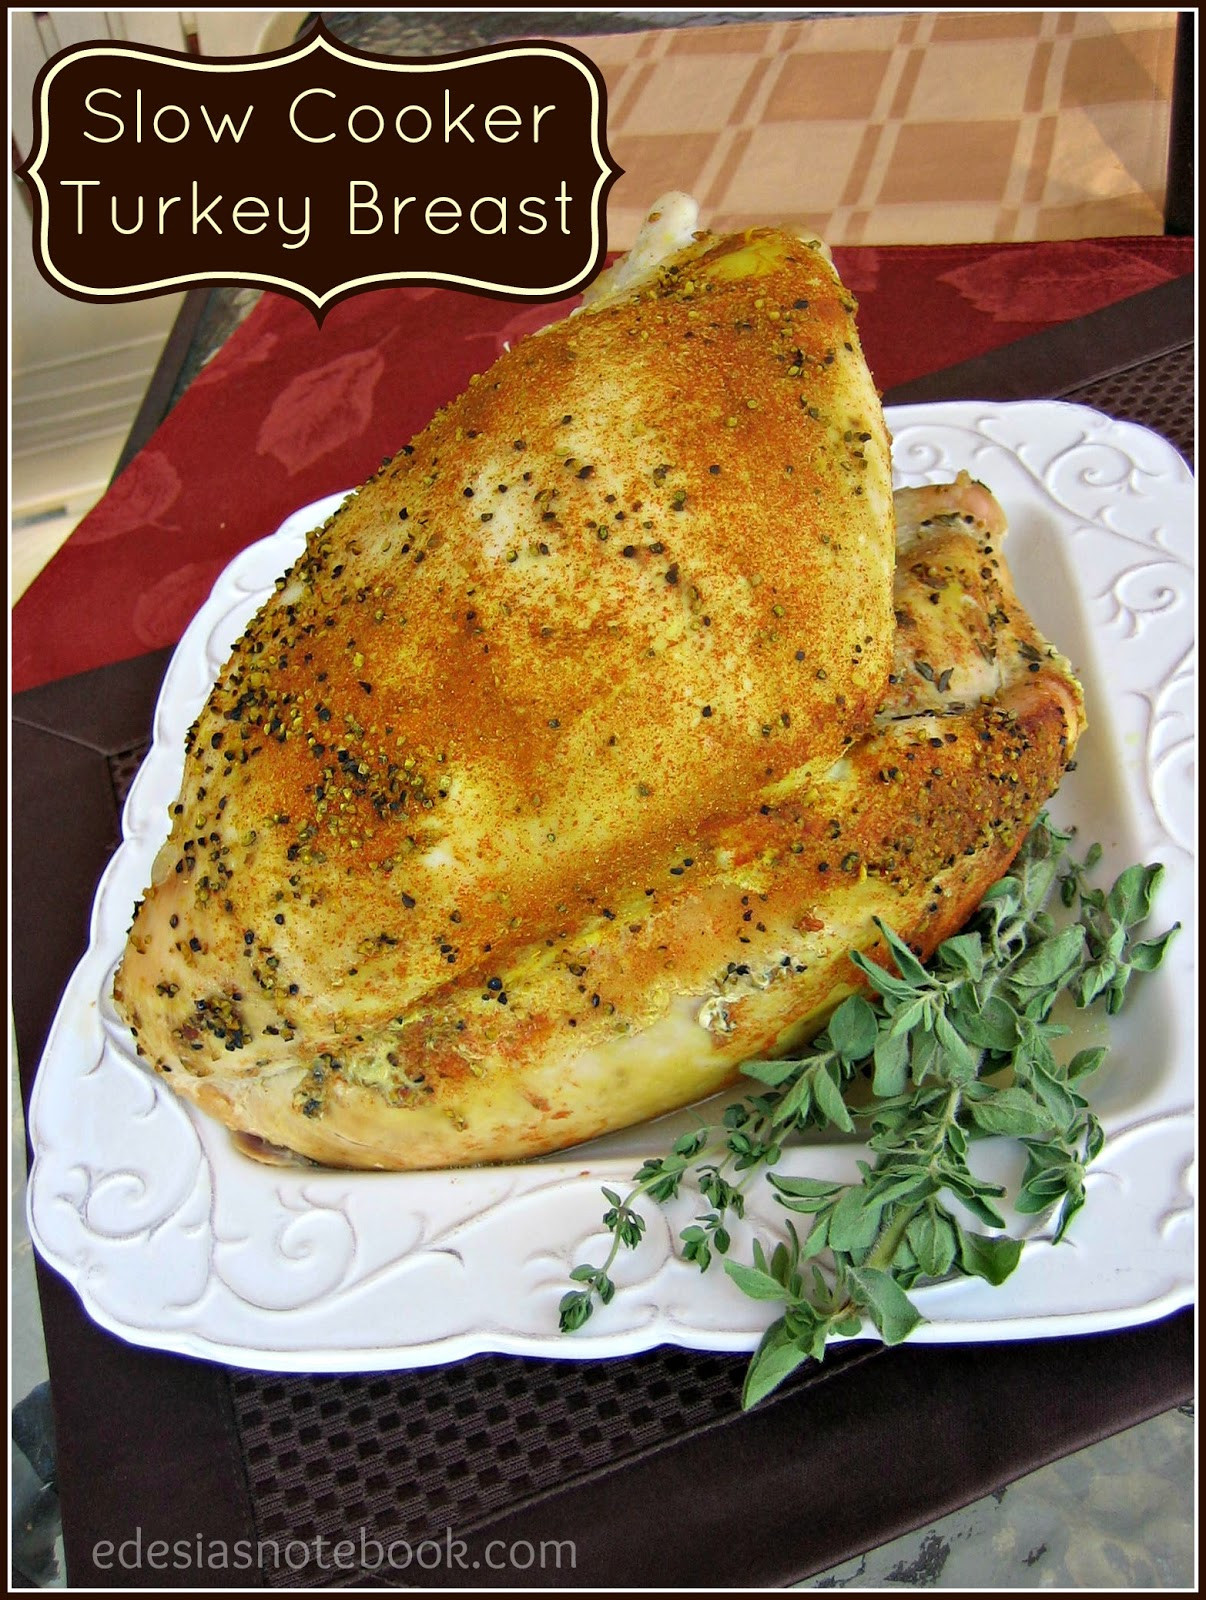 Slow Cooker Thanksgiving Turkey  Slow Cooker Turkey Breast Edesia s Notebook